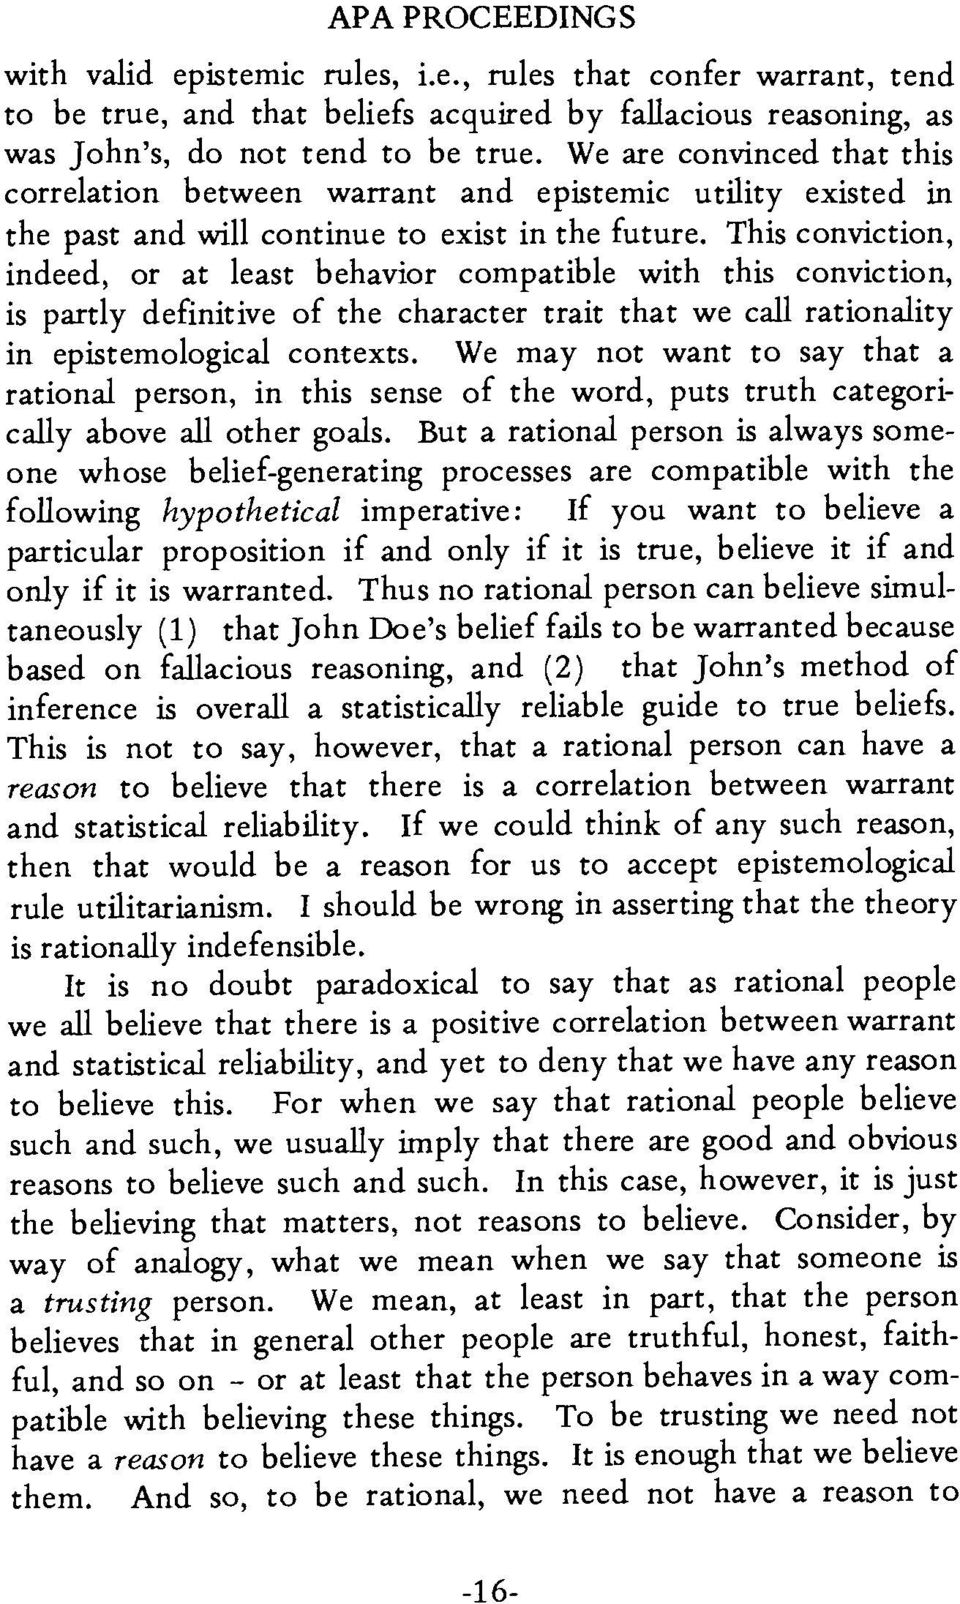 This conviction, indeed, or at least behavior compatible with this conviction, is partly definitive of the character trait that we call rationality in epistemological contexts.